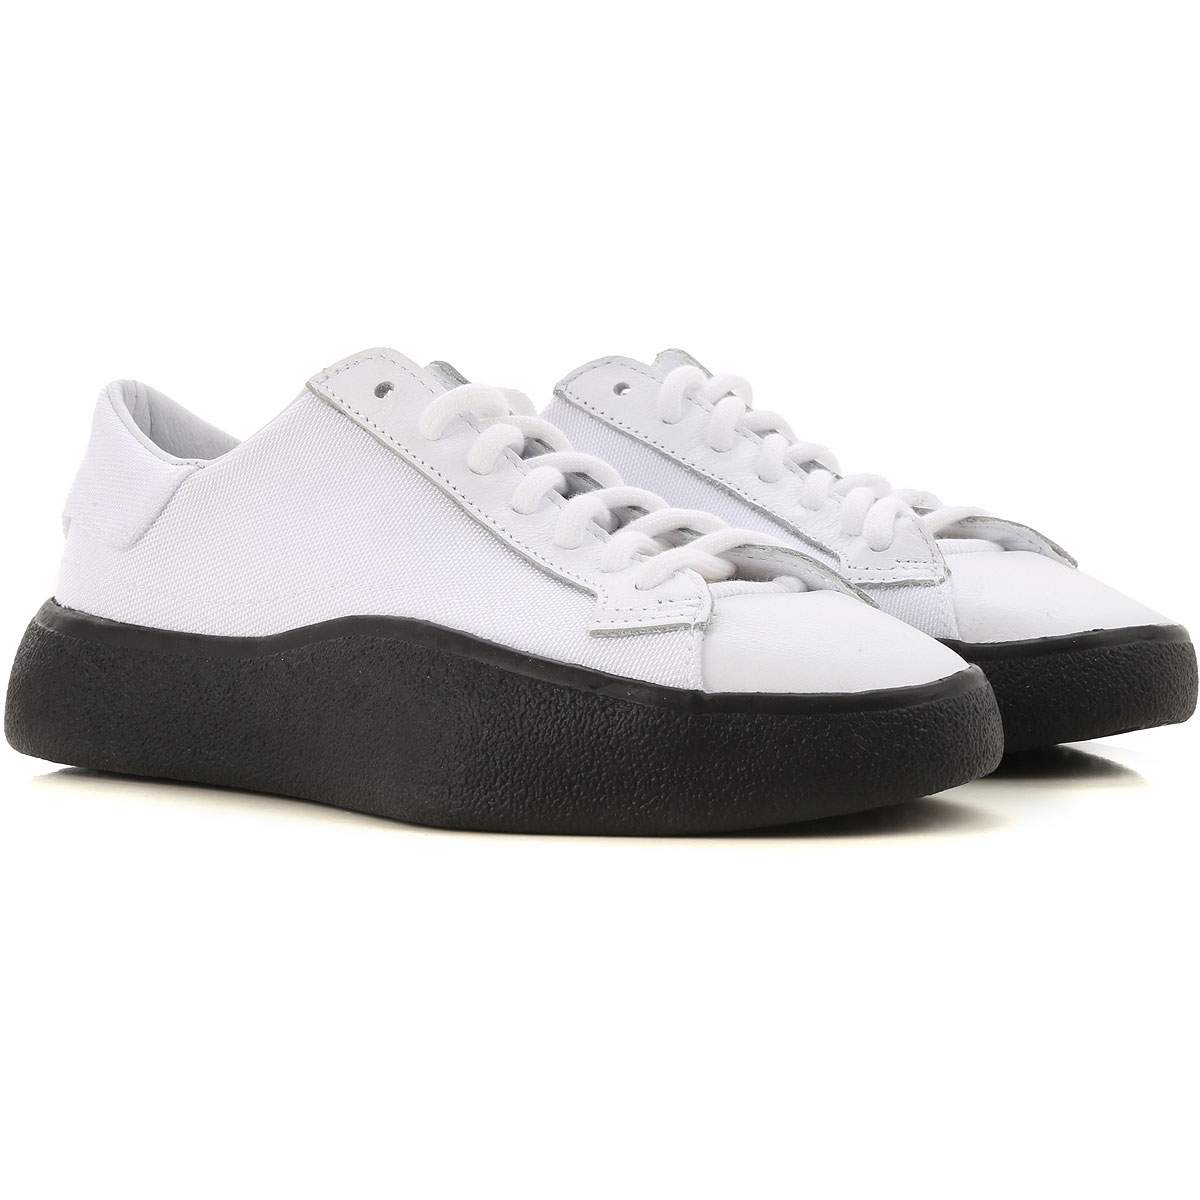 Y3 by Yohji Yamamoto Sneakers for Women On Sale in Outlet, White, Synthetic Textile, 2019, 4.5 5